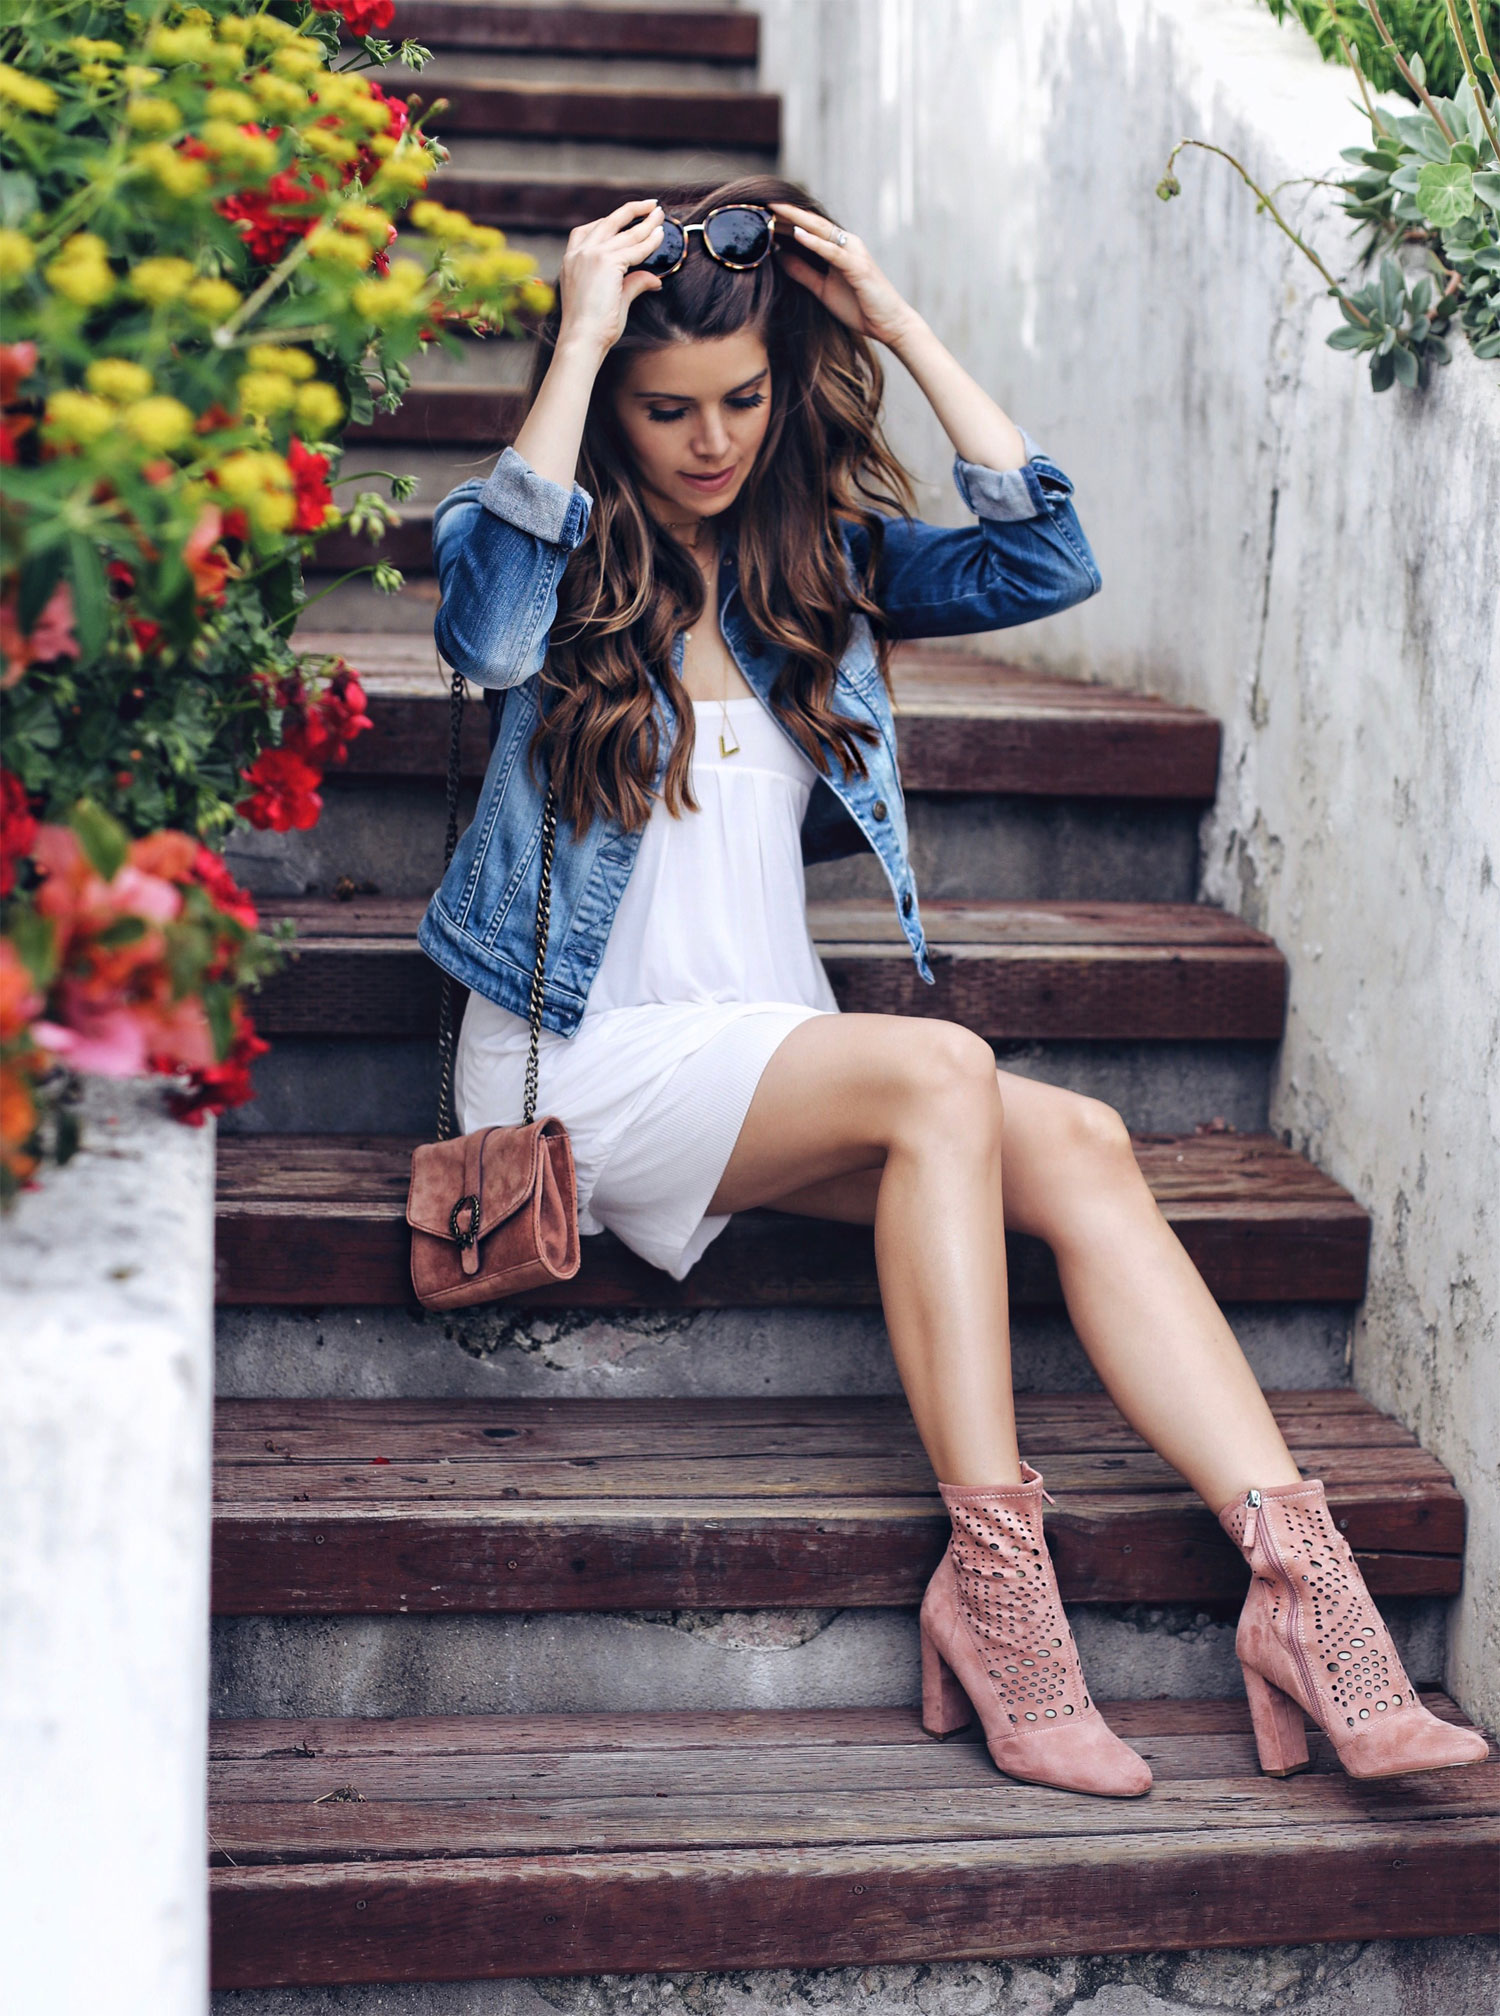 Fashion and lifestyle blogger Adelina Perrin of The Charming Olive using Pantene Pro-V shampoo and conditioner